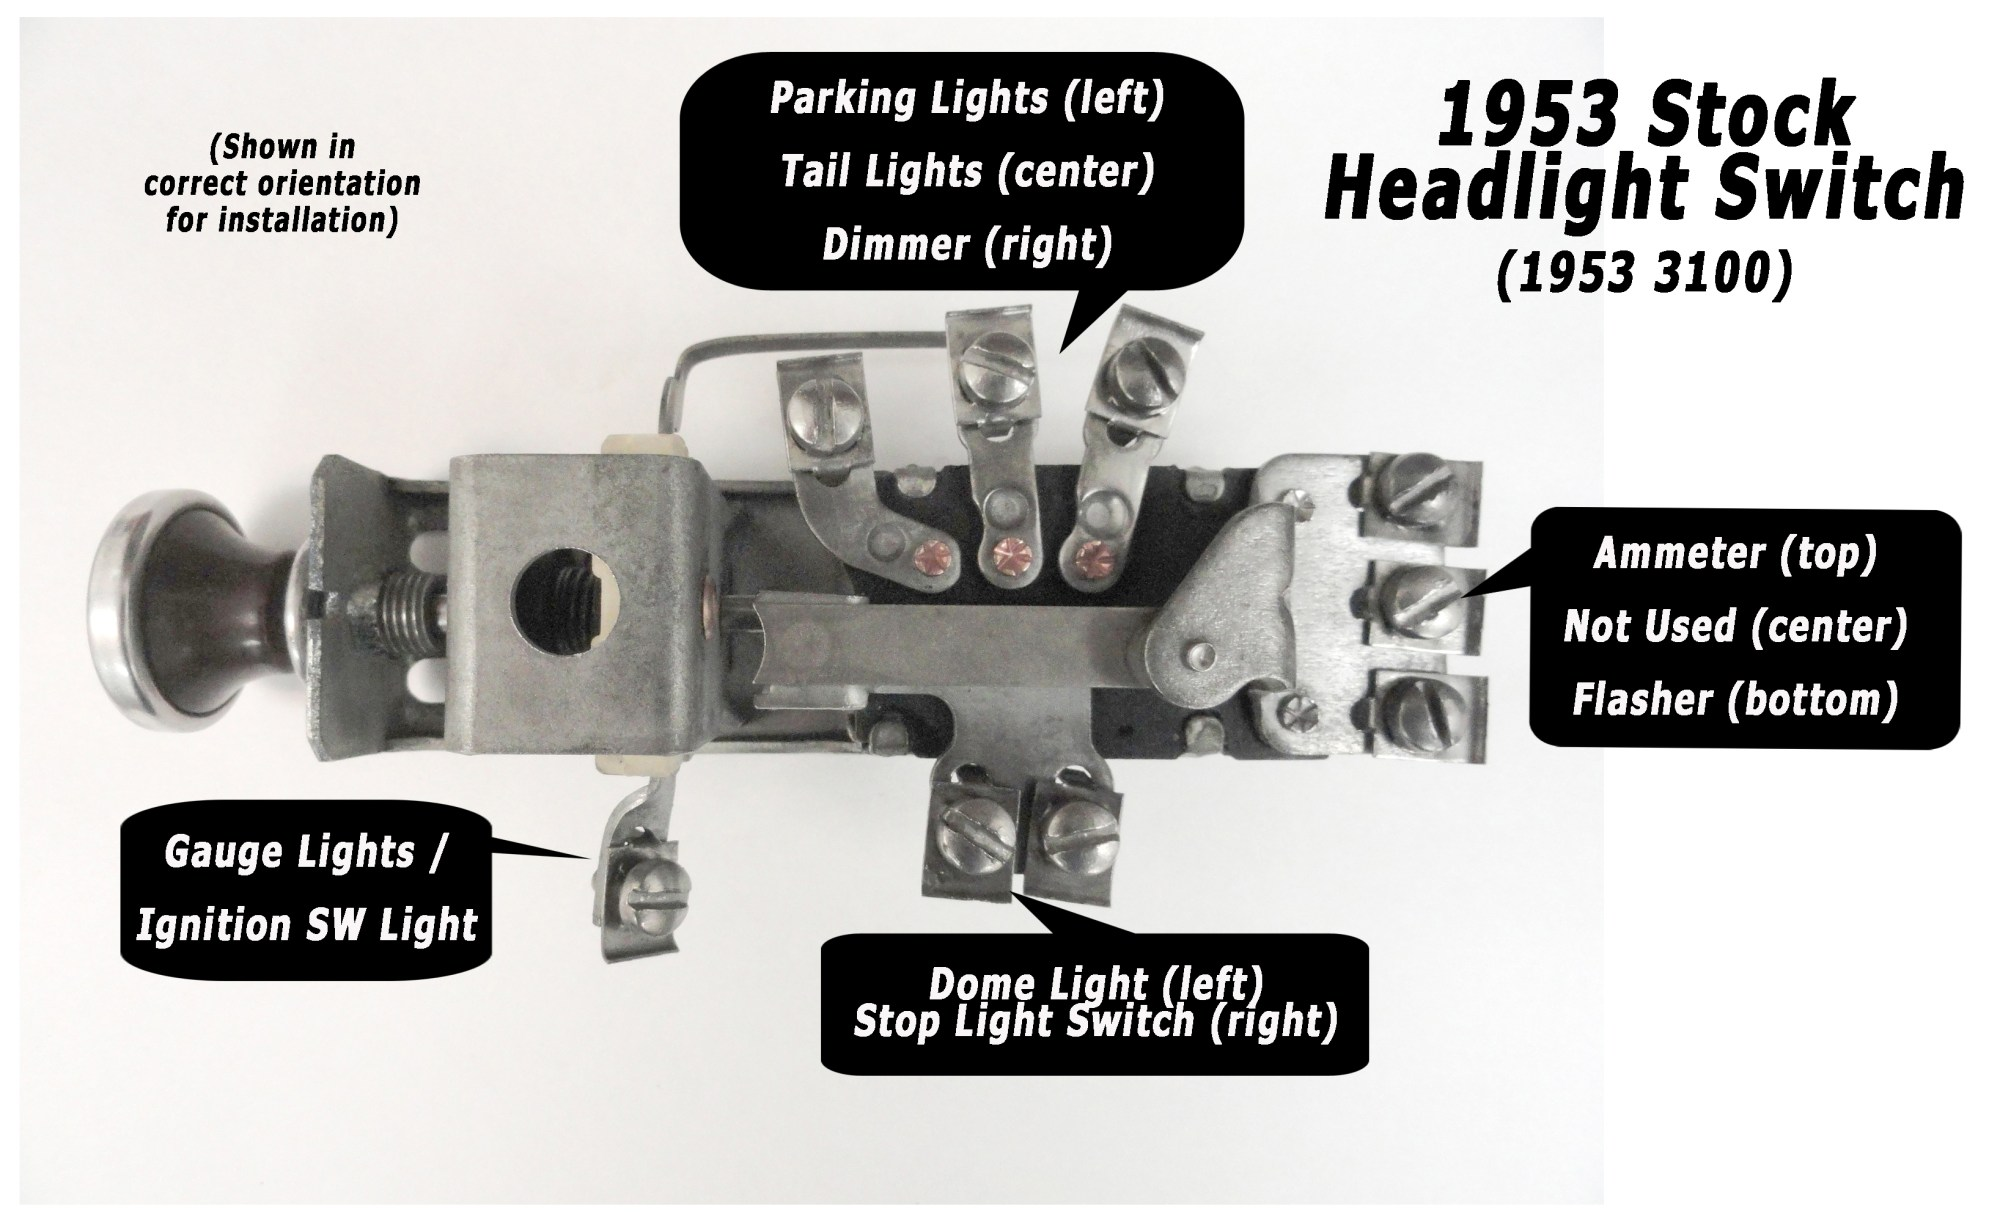 hight resolution of 1953 headlightswitchdiagramlg ad truck wiring made easy painless wiring headlight switch wiring diagram at cita